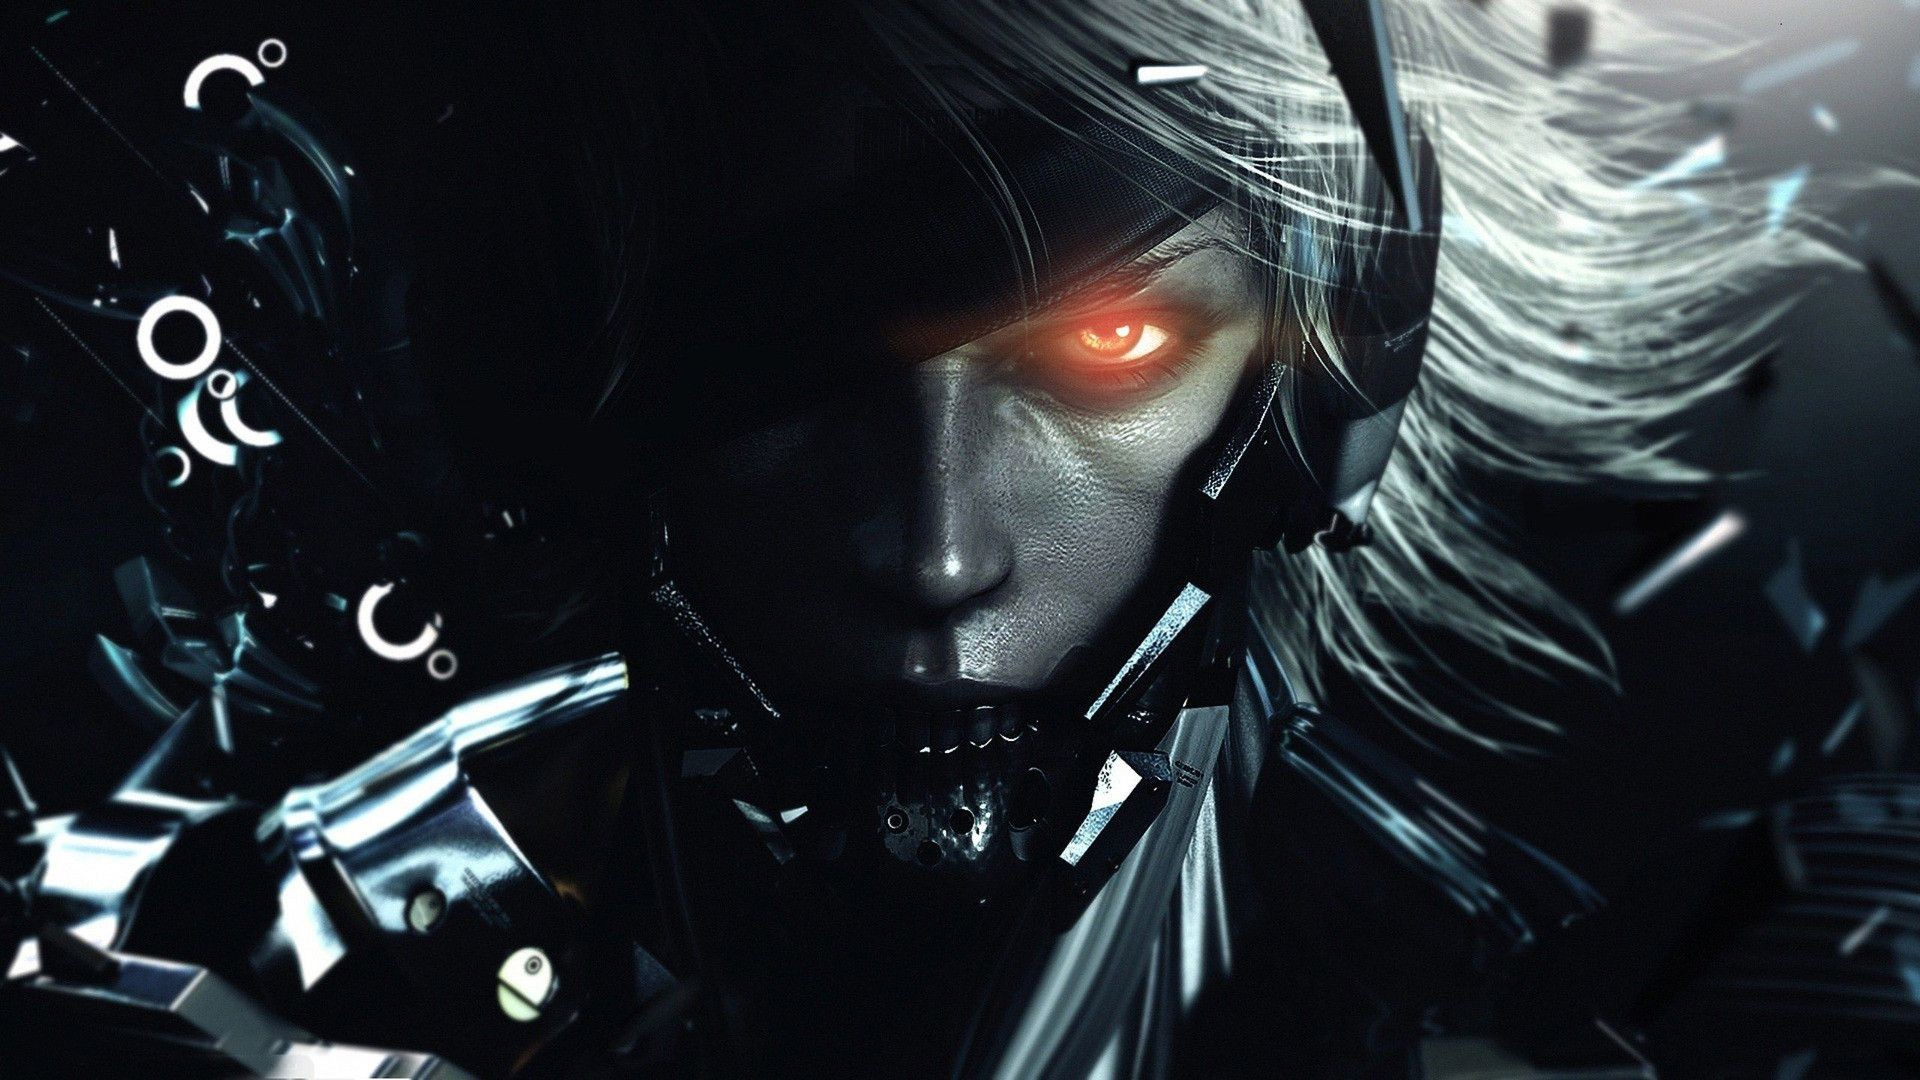 metal gear wallpaper ·① download free amazing hd backgrounds for